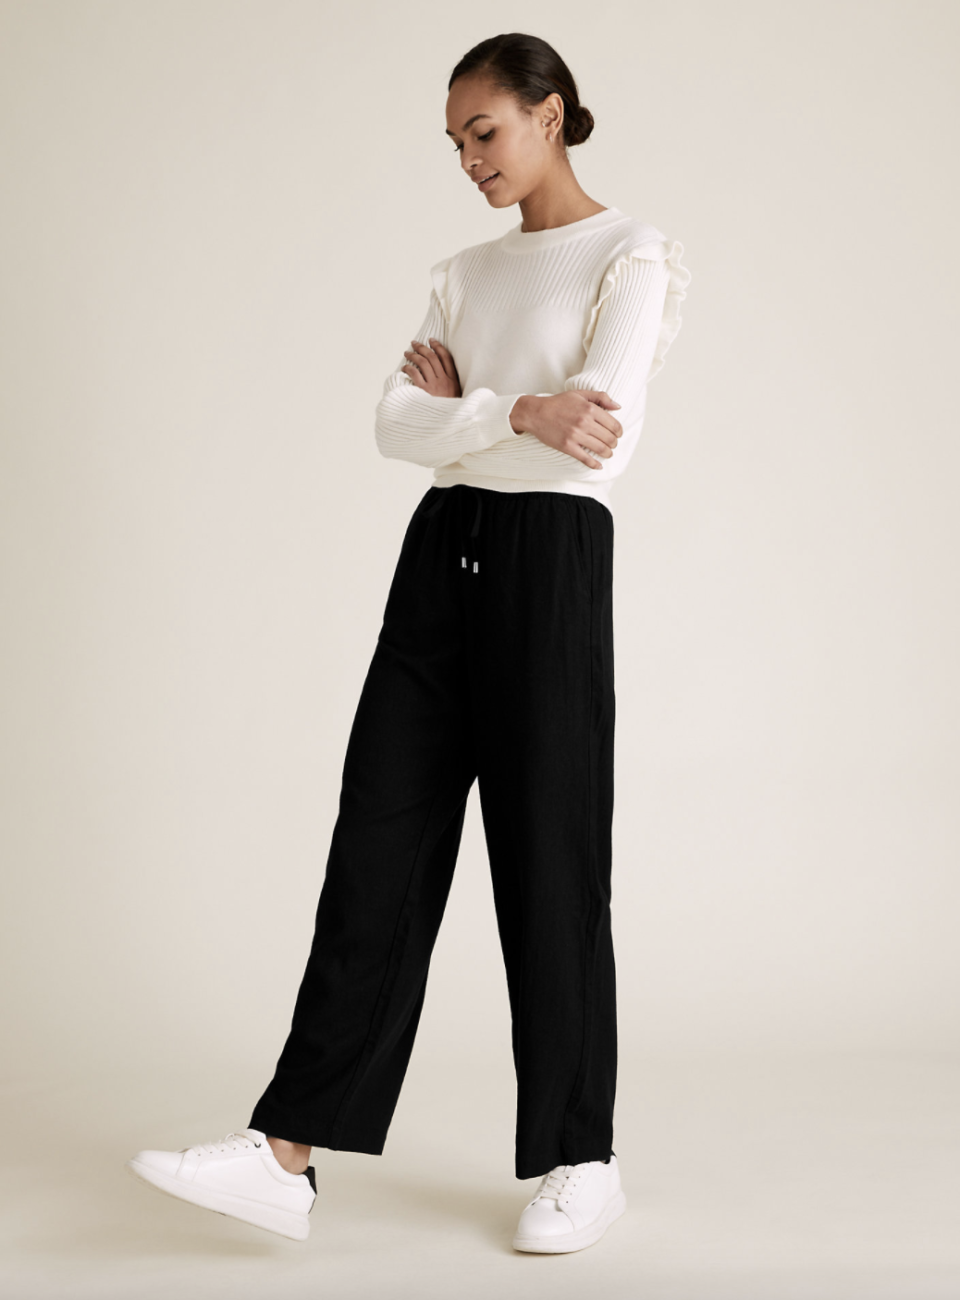 M&S linen trousers come in three colours; black, navy blue and white.  (Marks and Spencer)